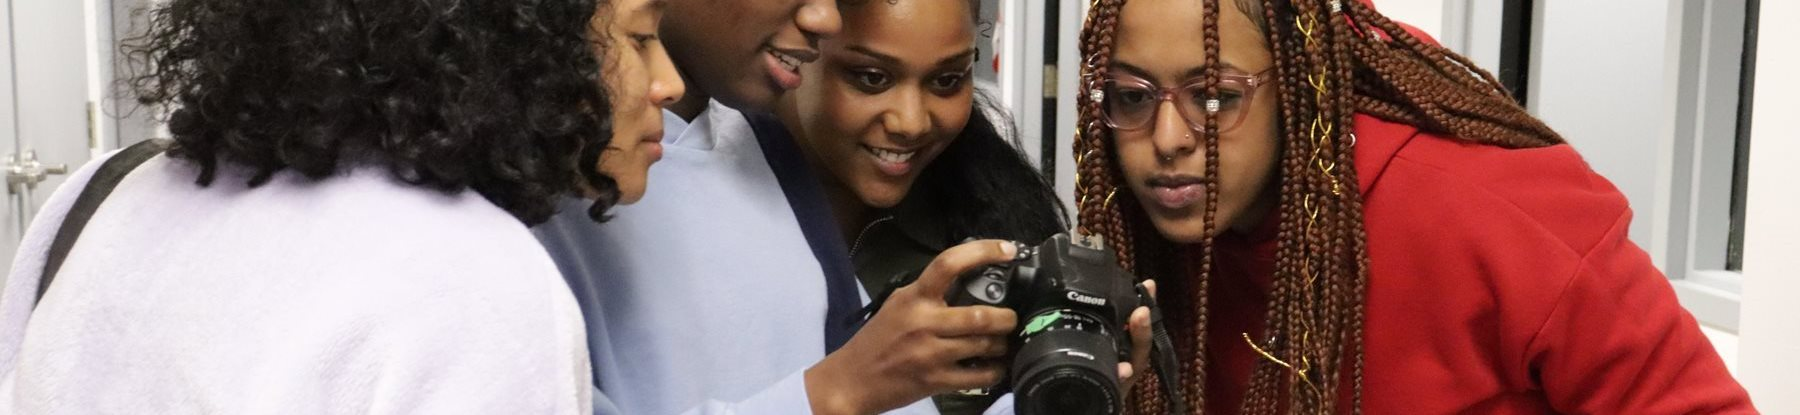 A group of students look into the viewfinder of a digital camera